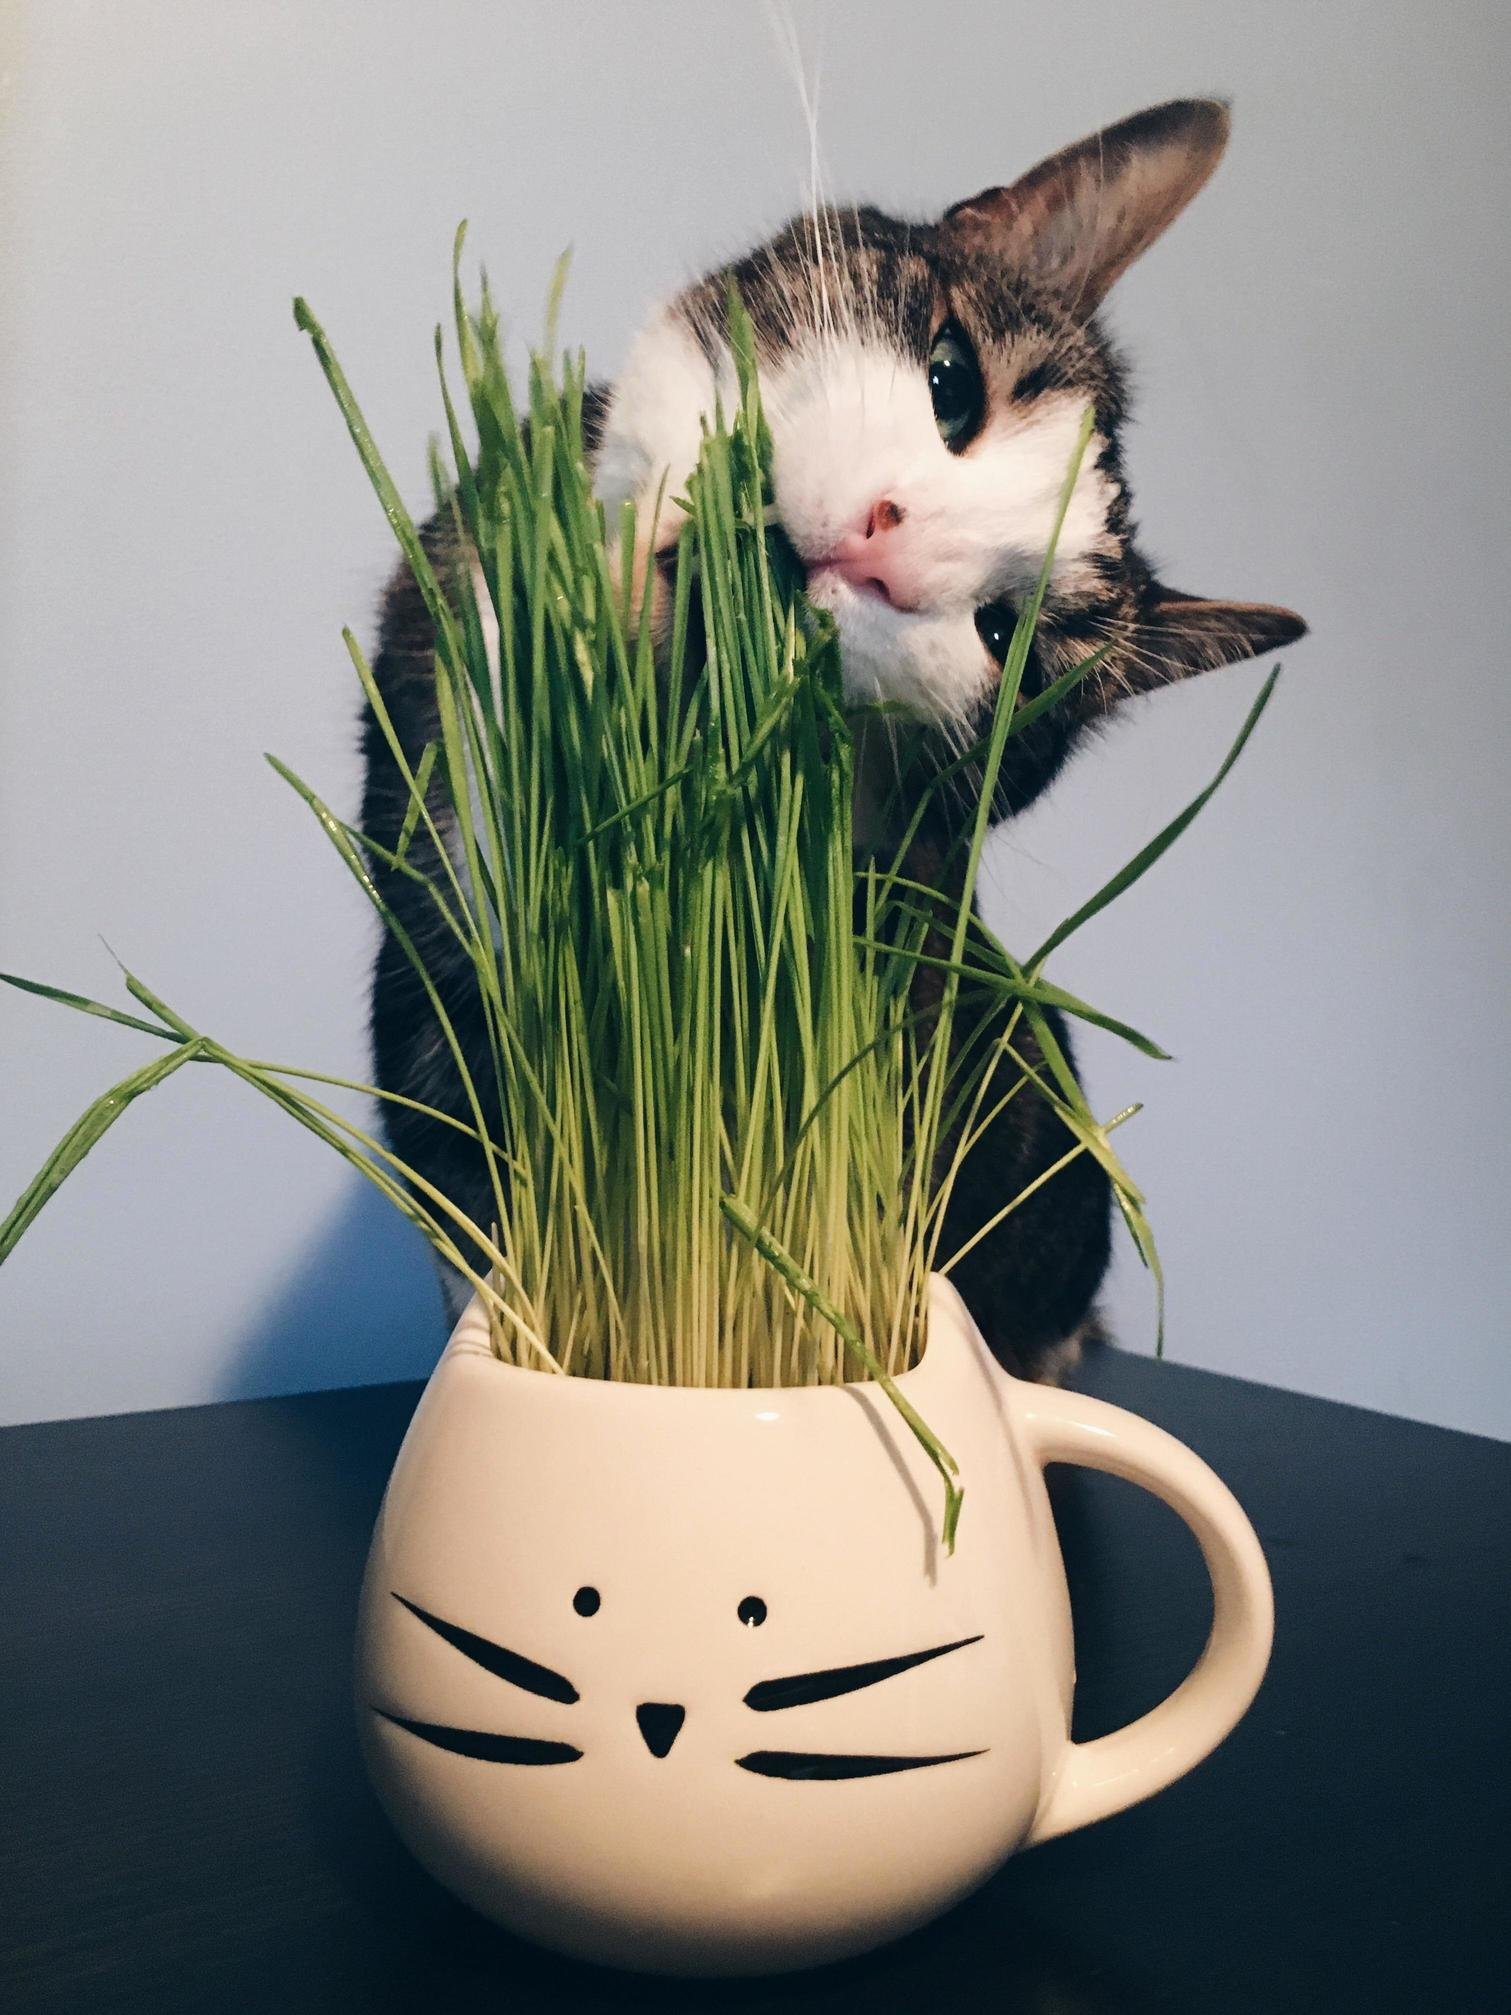 Bernie loves his cat grass.